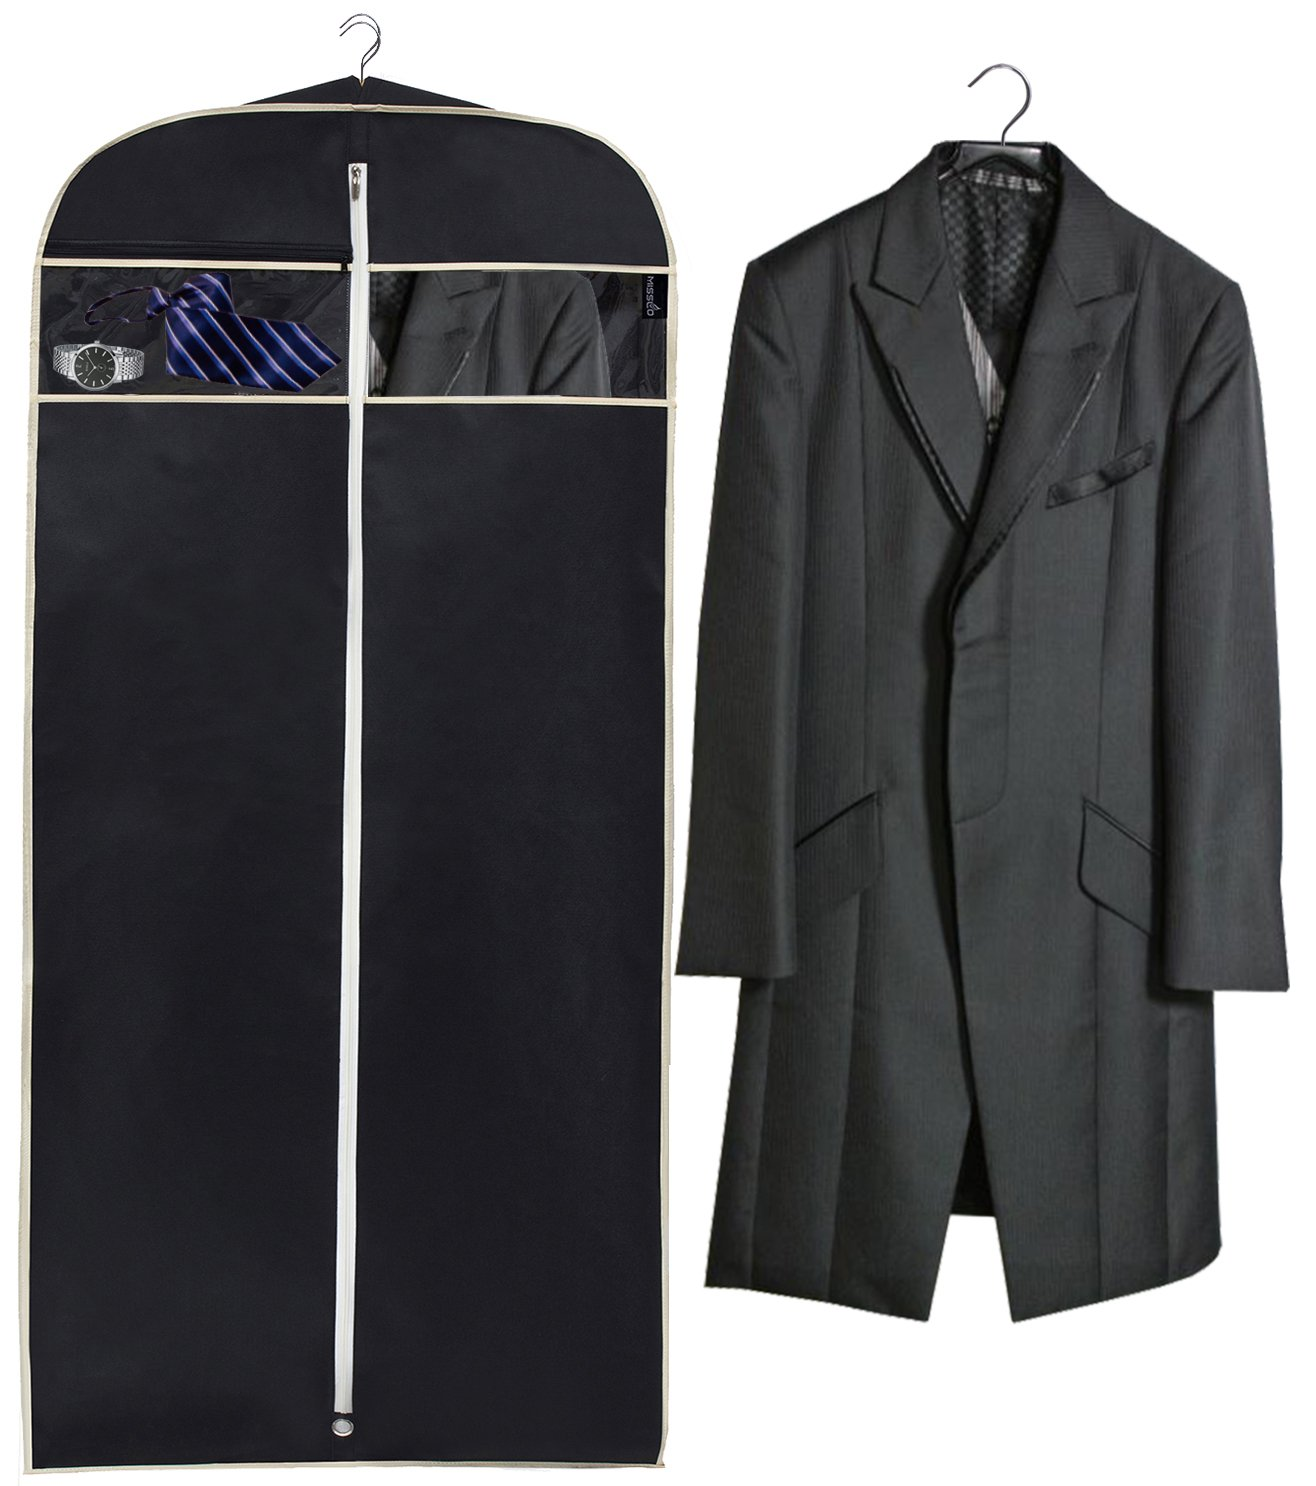 MISSLO 43'' Gusseted Travel Garment Bag with Accessories Zipper Pocket Breathable Suit Garment Cover for Shirts Dresses Coats, Black by MISSLO (Image #4)